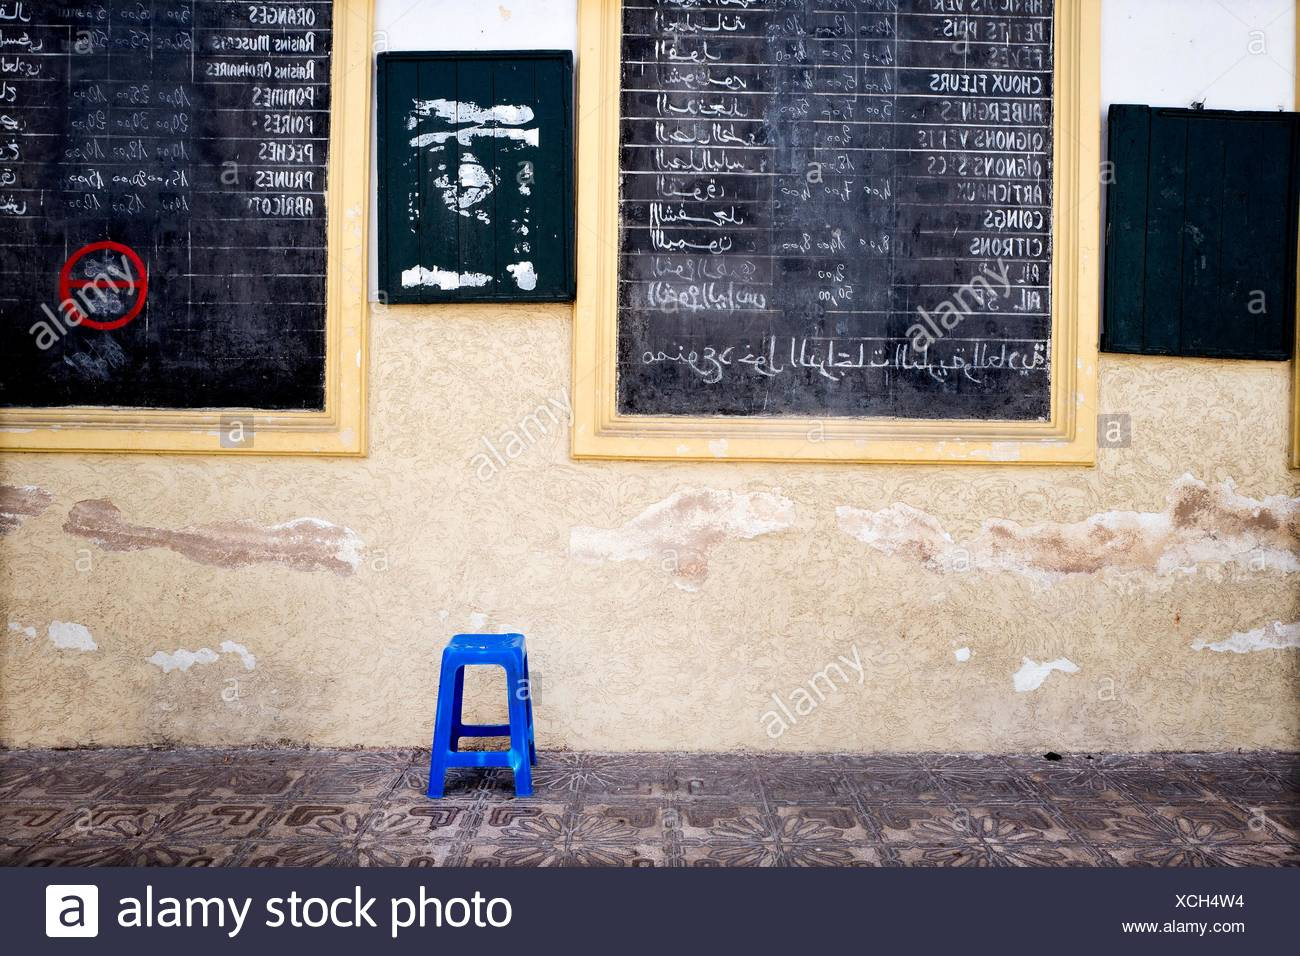 Wall at the entrance of a market with a blue stool and blackboards announcing prices of fruits and vegetables in French and Arab. Nouvelle Ville - Stock Image